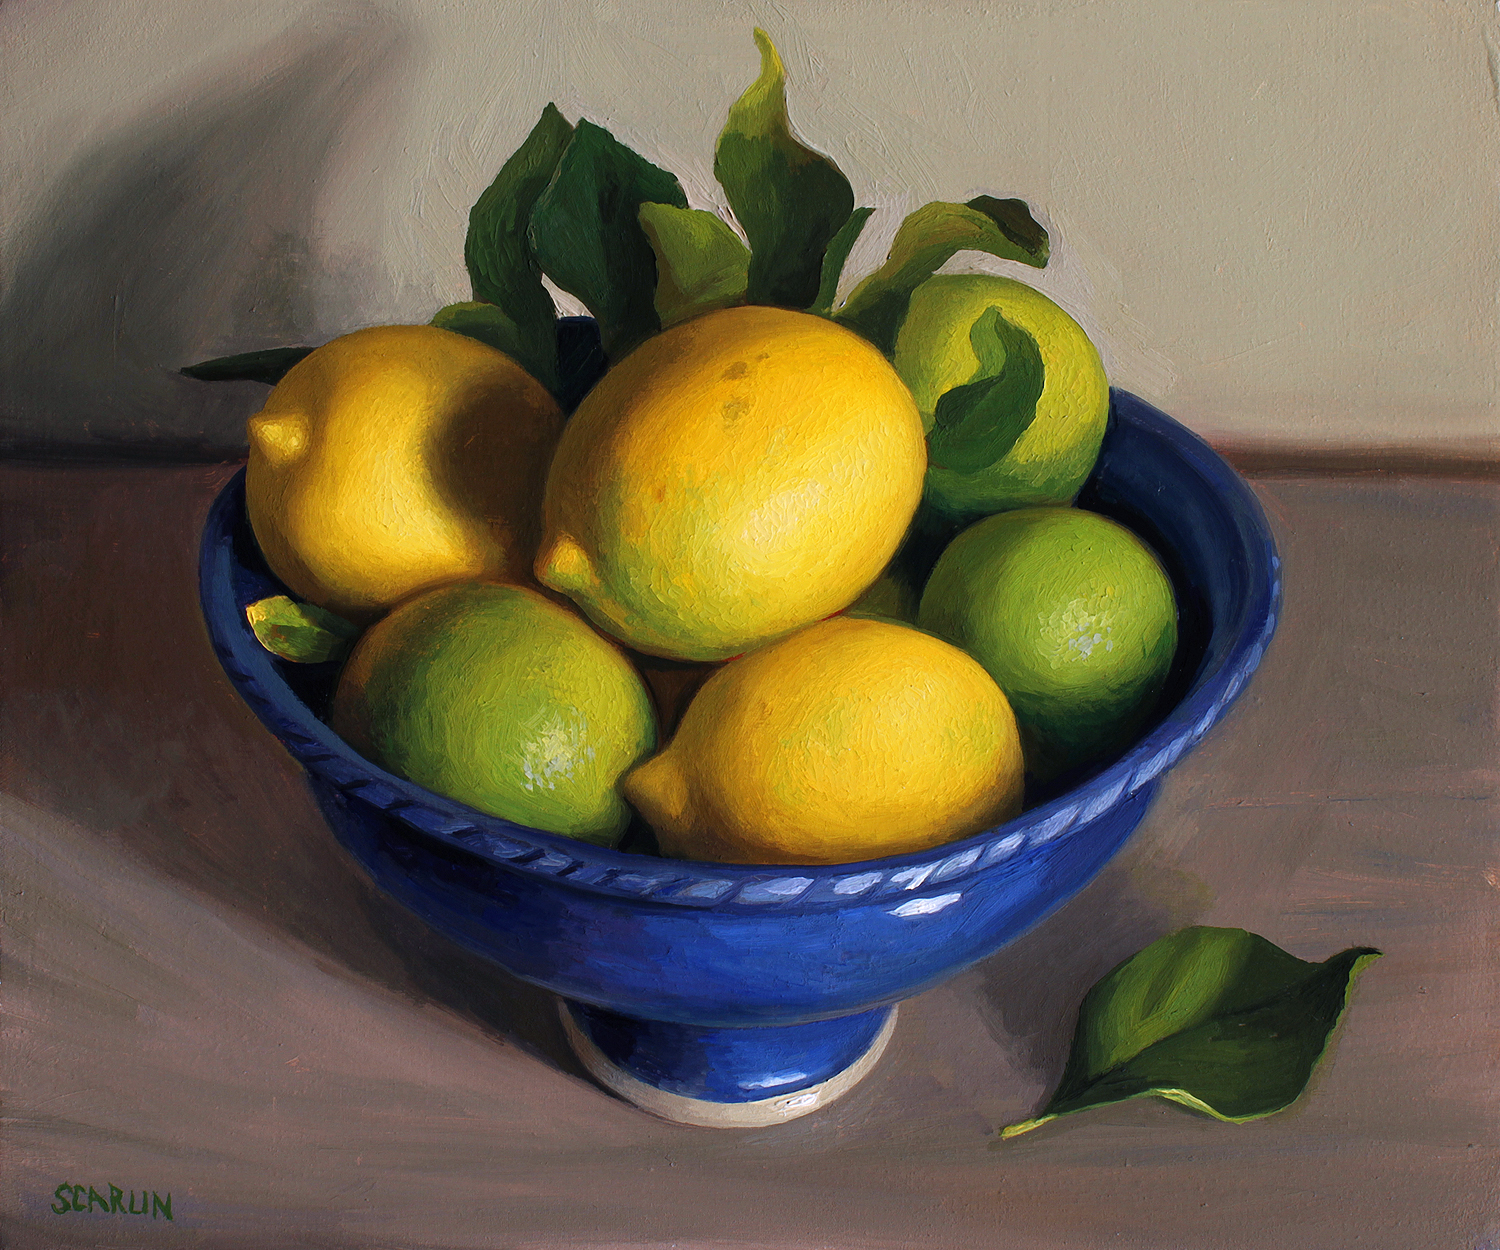 Lemons in a bowl   Oil on panel   30x35cm    2017    Private collection